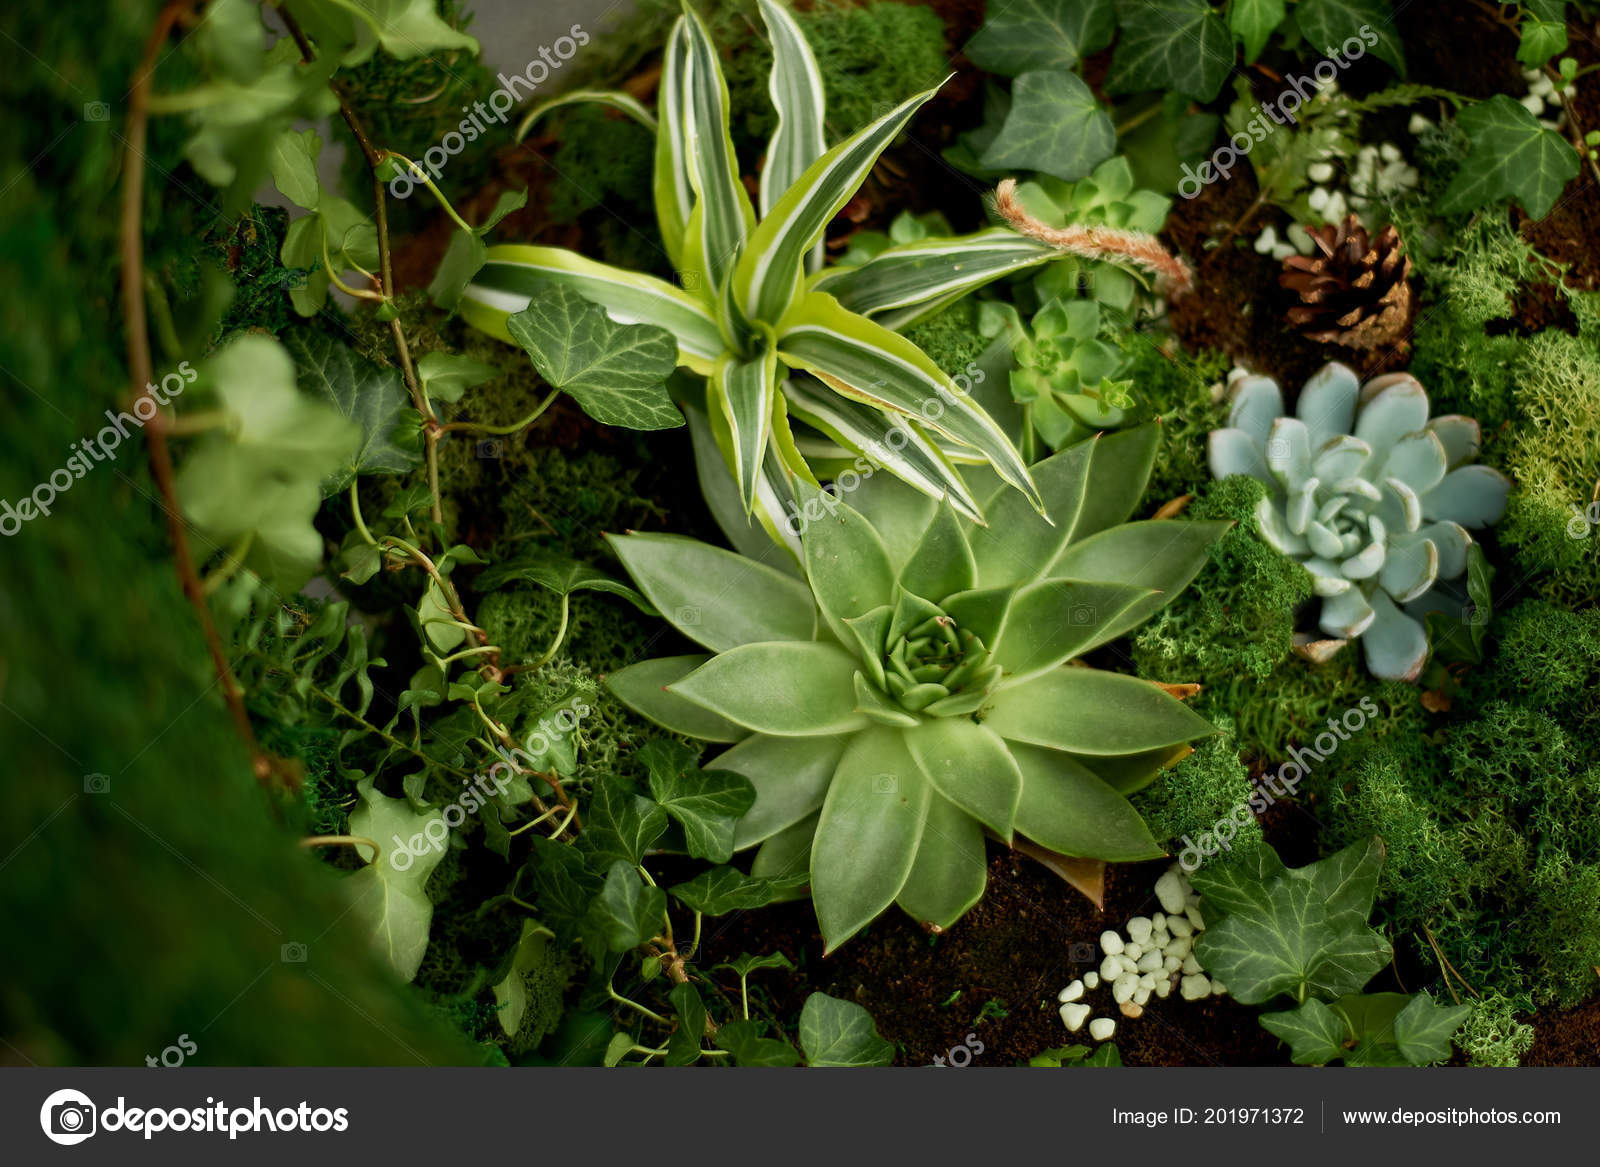 The Composition Of Succulents Ground Cover Plants Moss